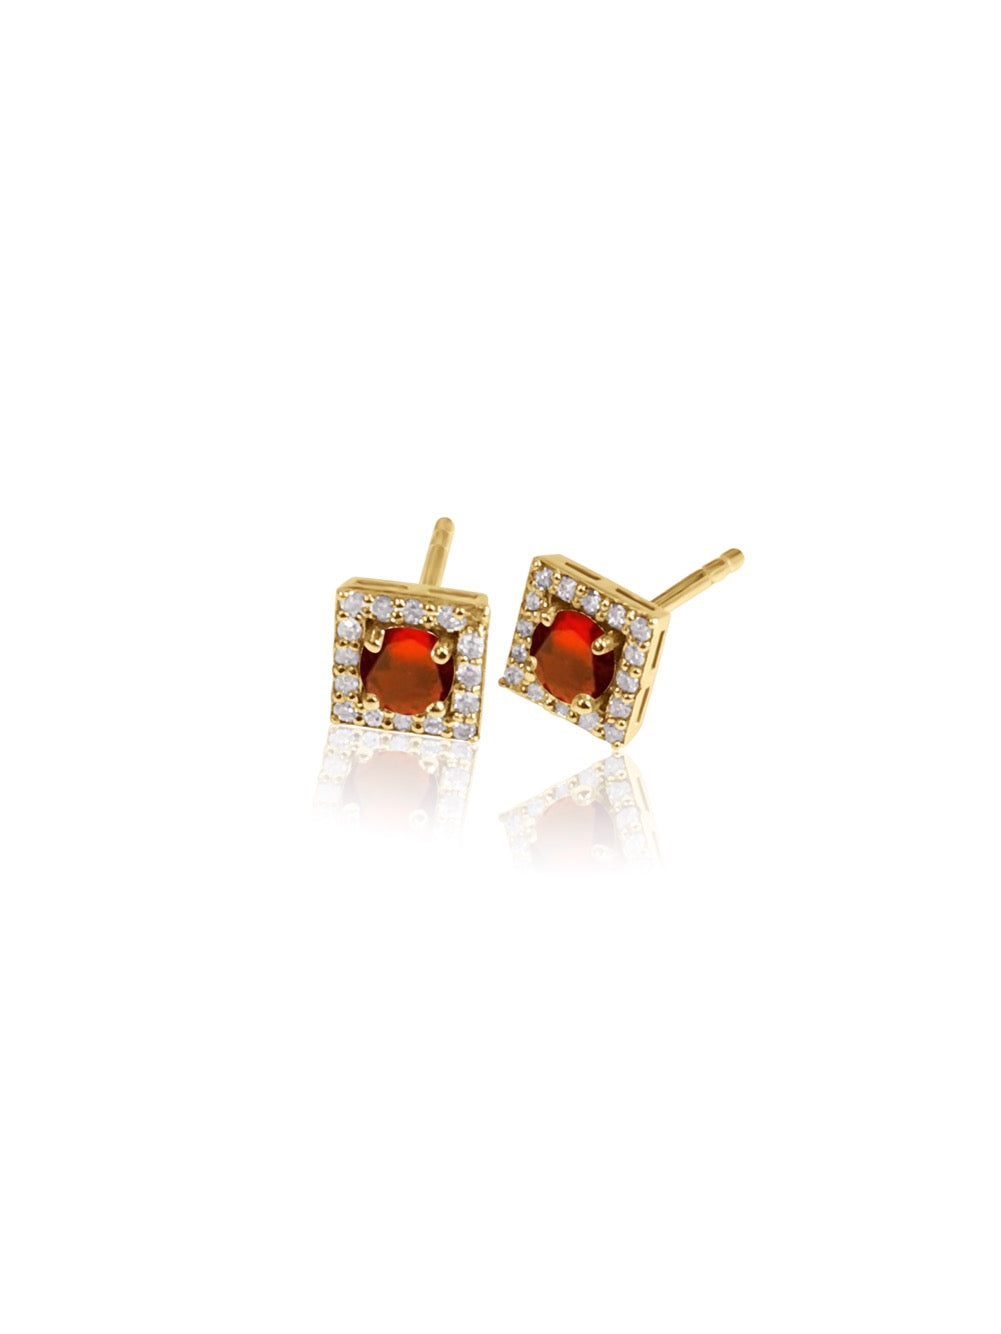 14K Gold Diamond square Halo Earrings